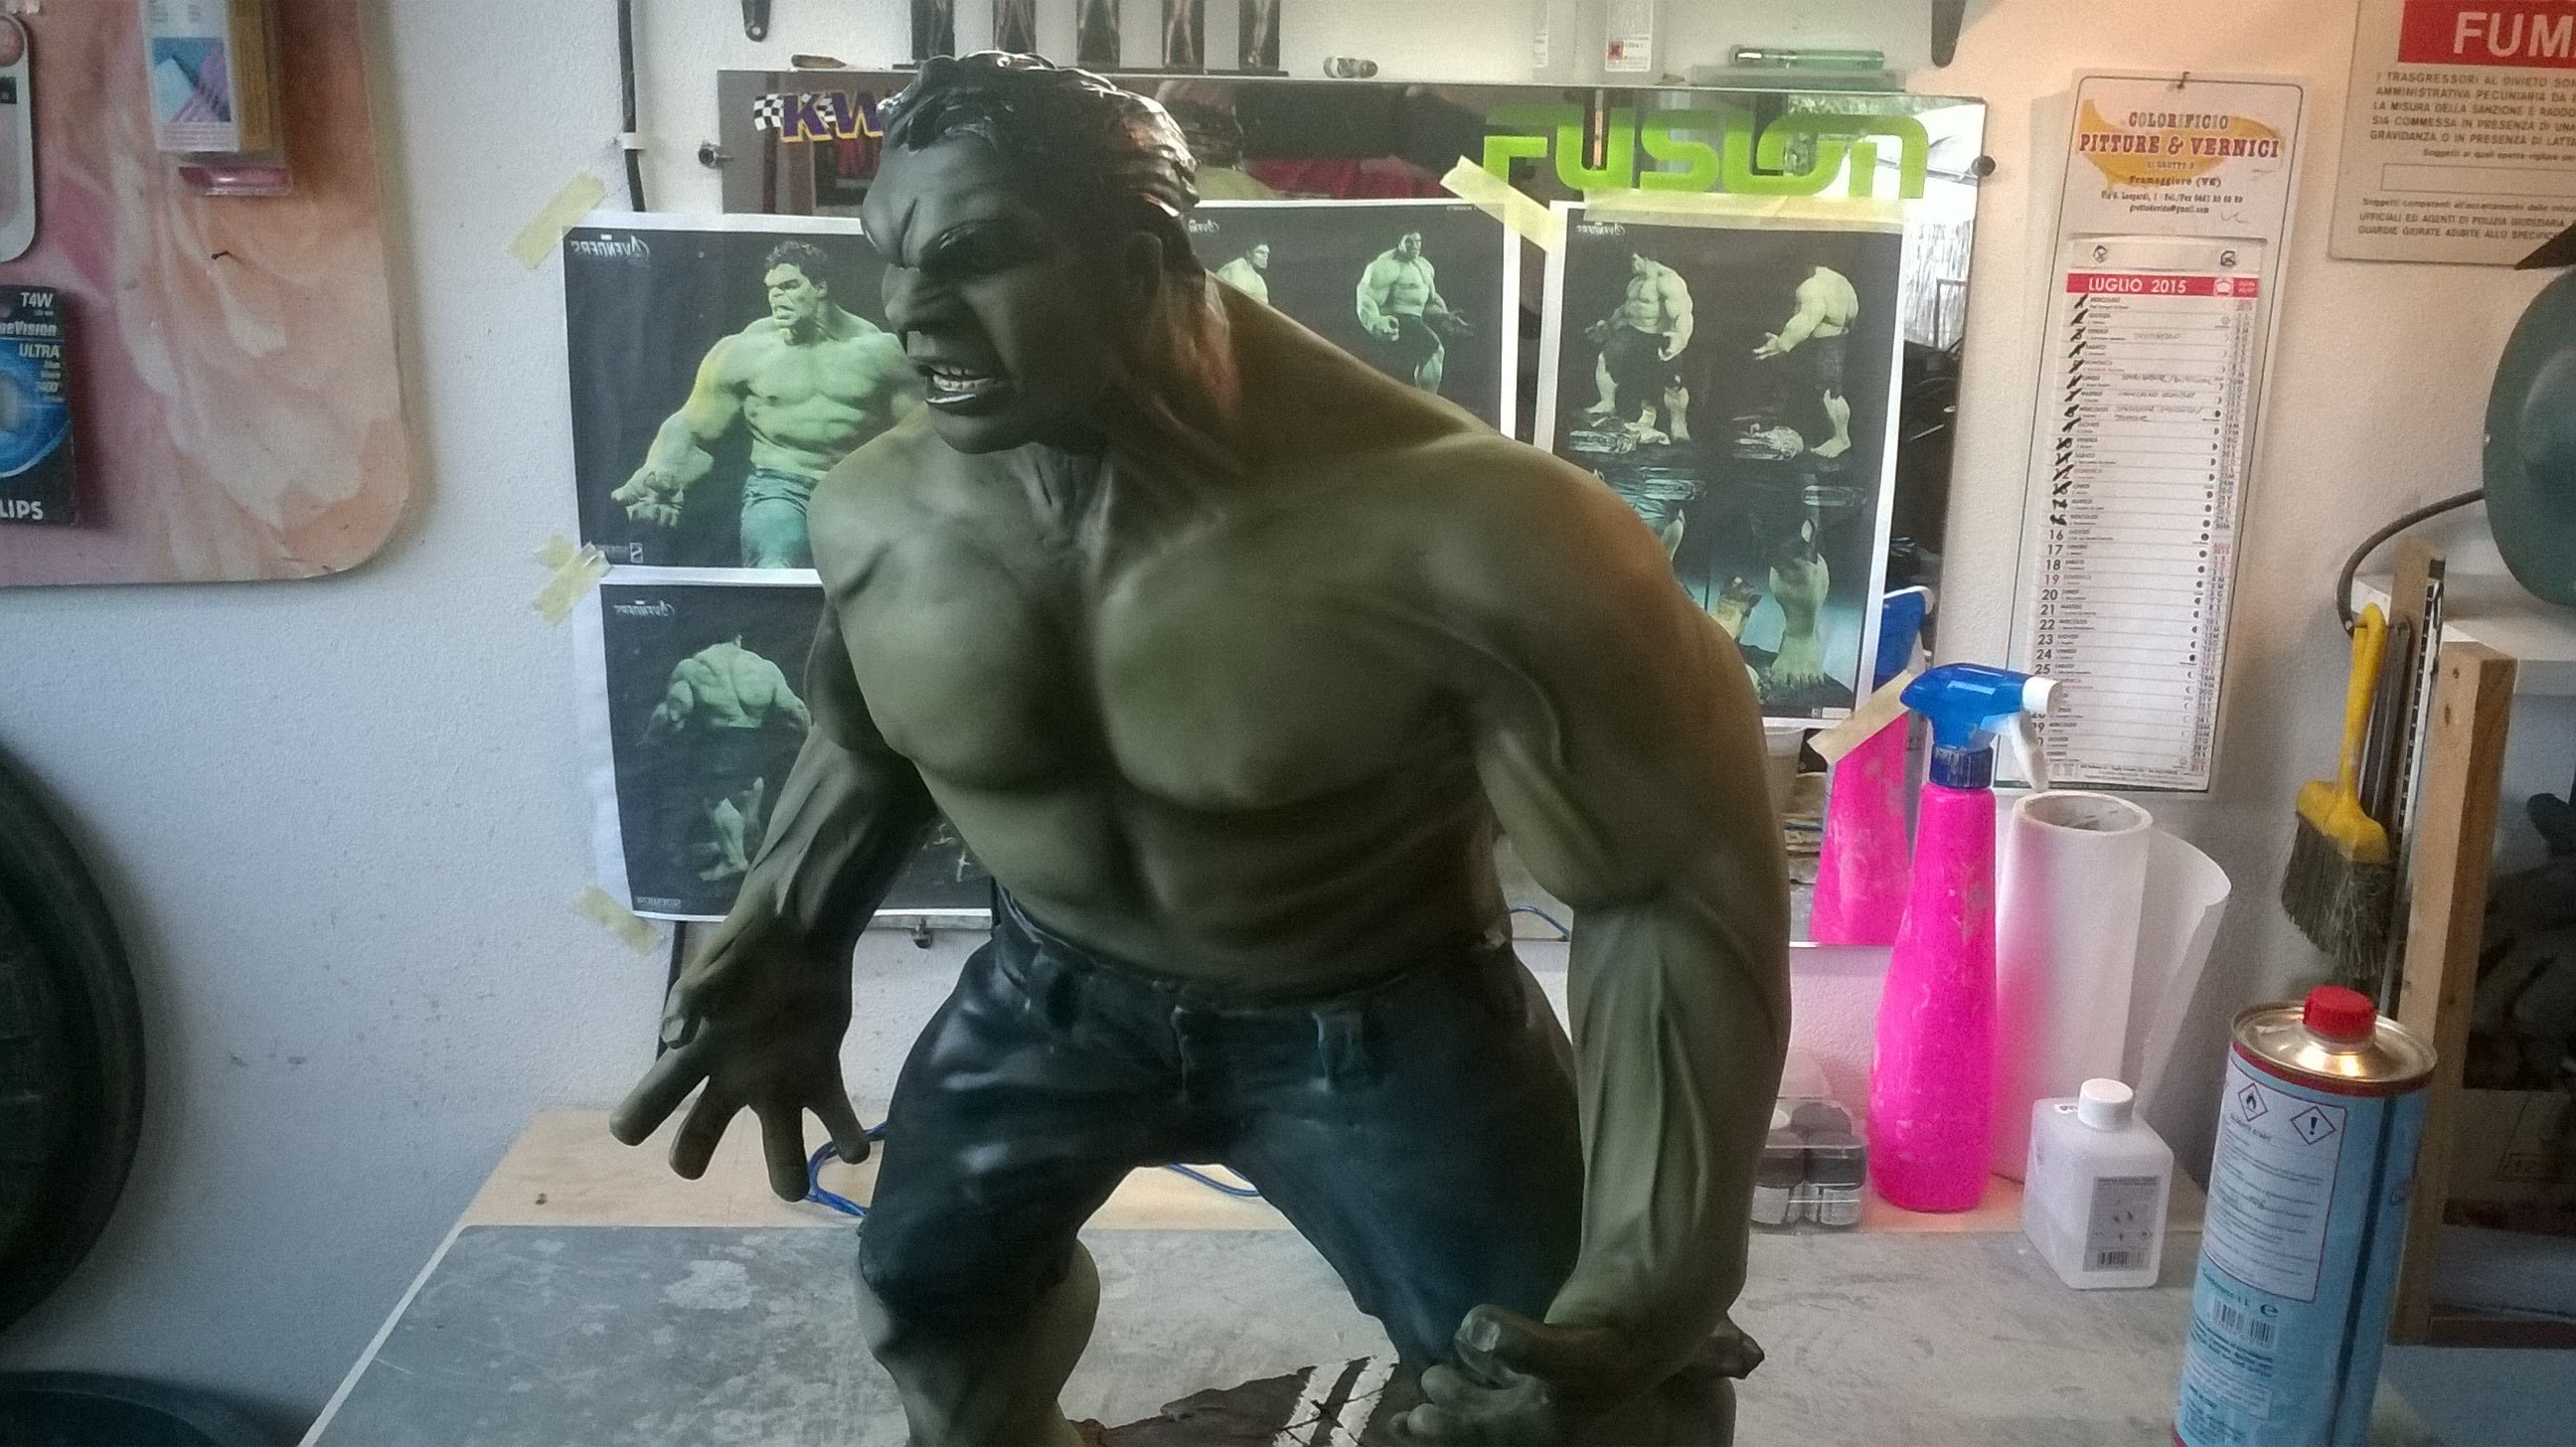 DANY BAO - HULK AVENGERS ACTION FIGURE - Lesson and tutorial sculpture modeled